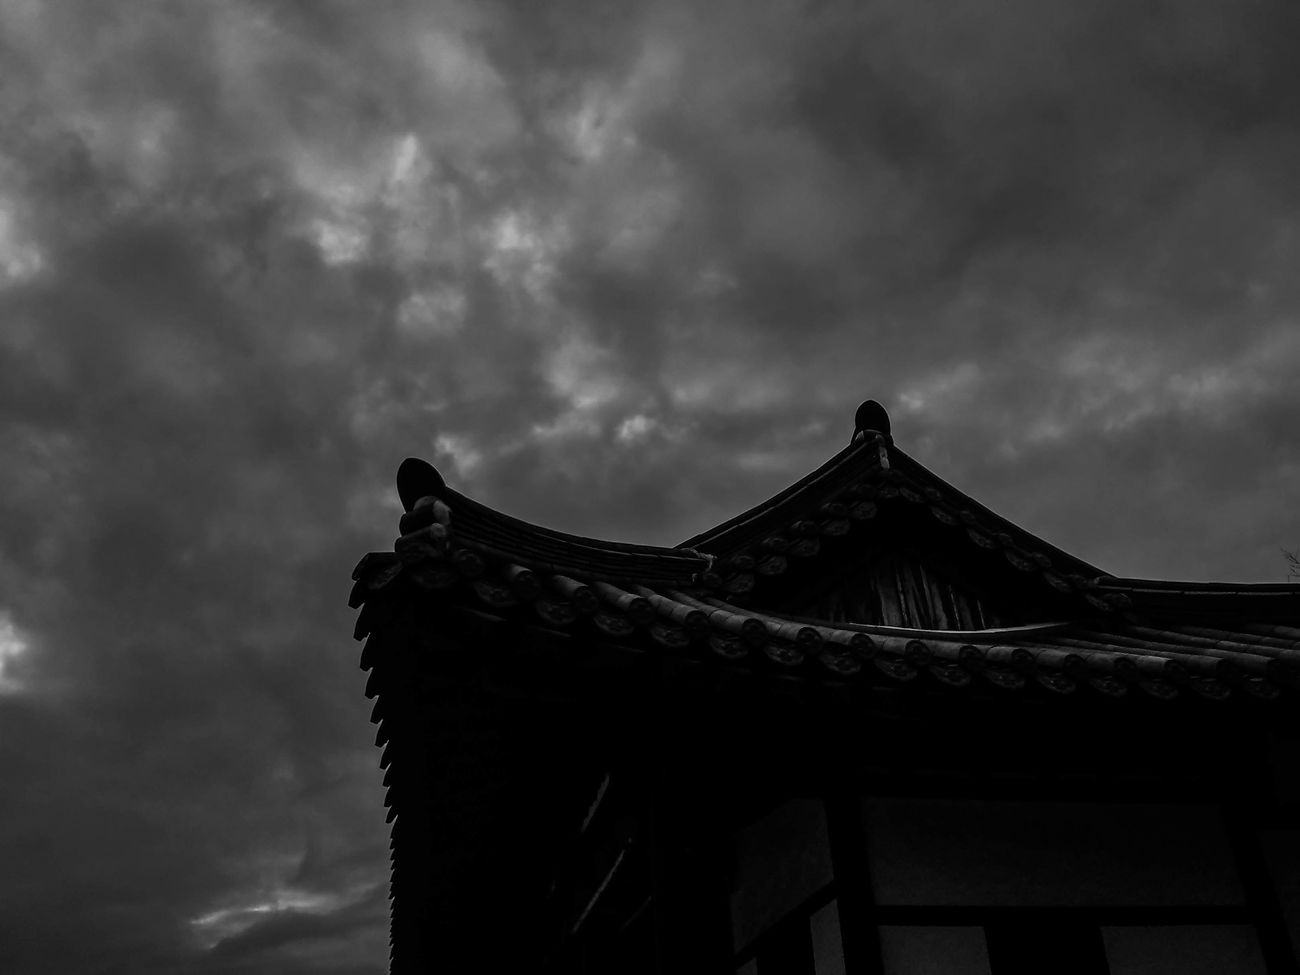 Cloud - Sky Architecture No People Cultures Outdoors Building Exterior Built Structure Blackandwhite Black And White Gloomy Gloomy Weather Korean Traditional Architecture Low Angle View Dark